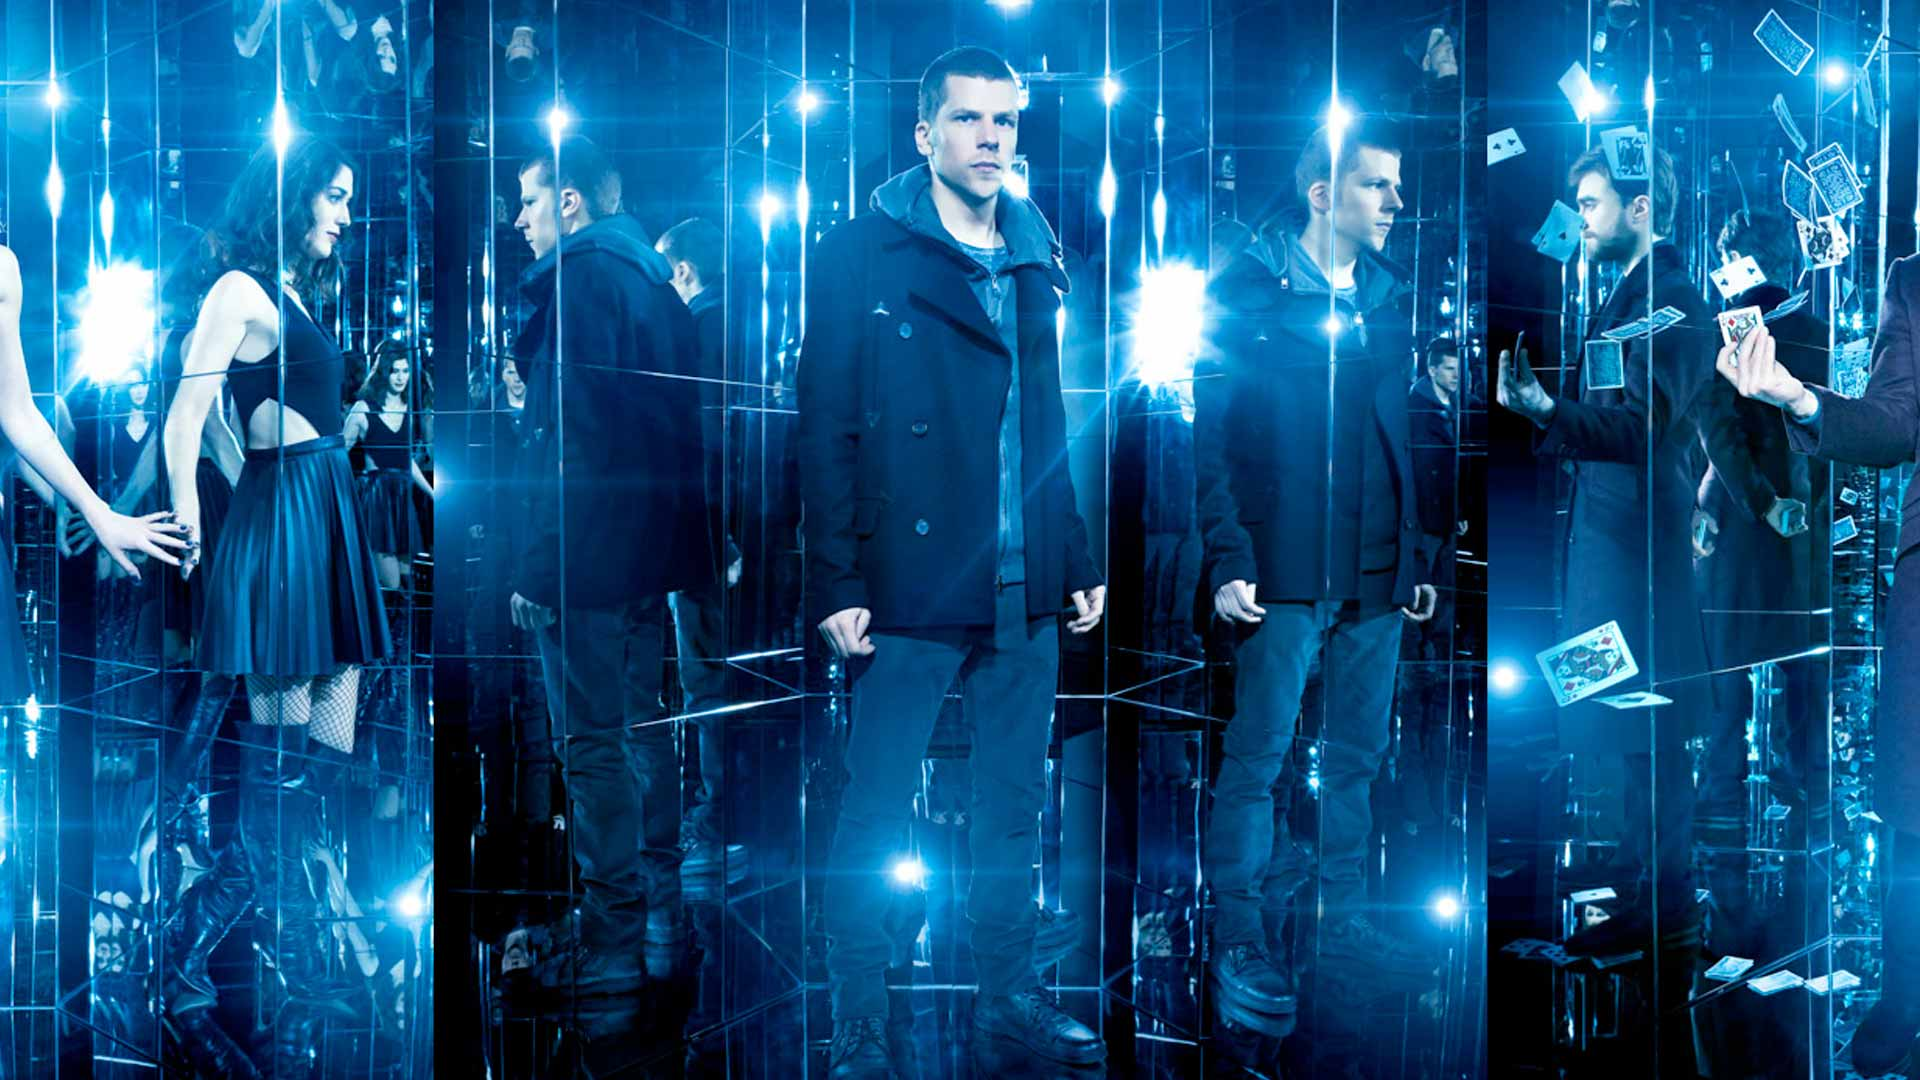 Now You See Me 2 2016 After The Credits Mediastinger